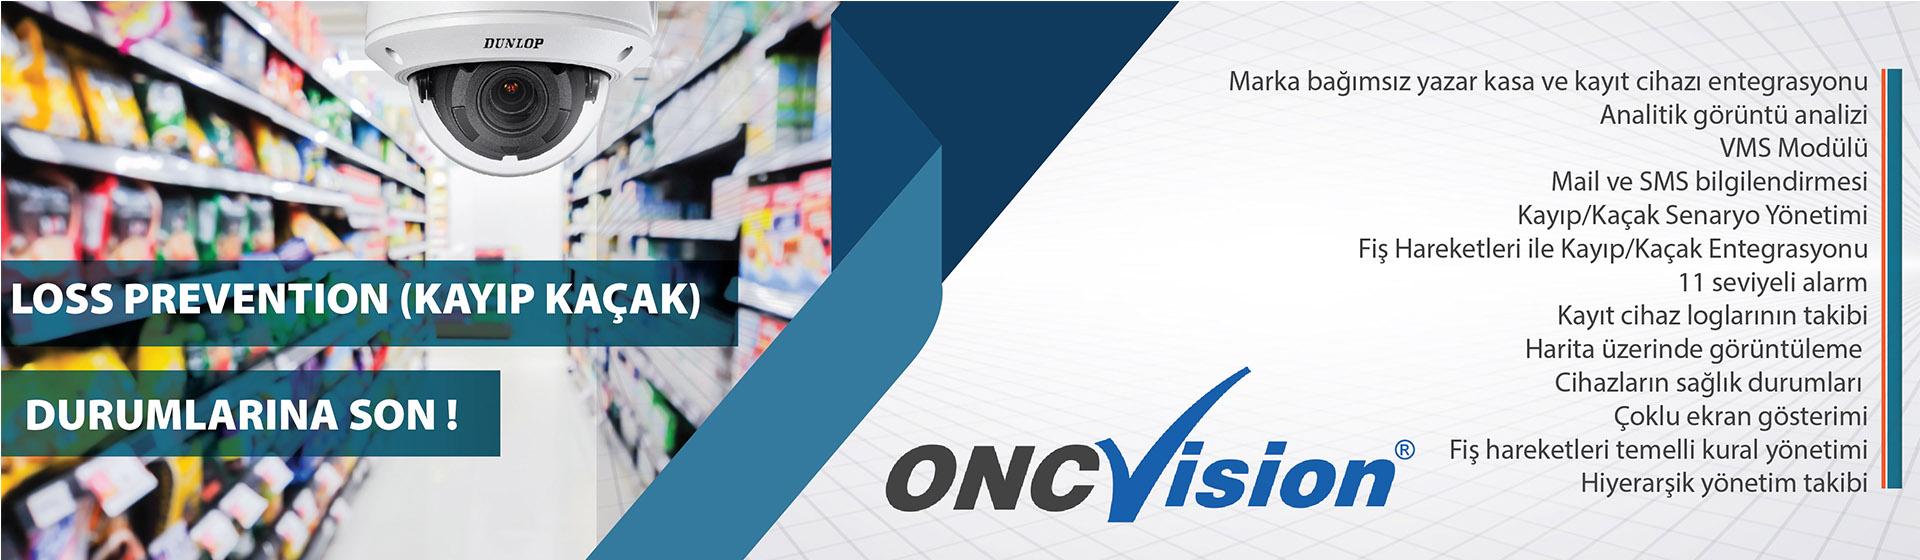 OncVision